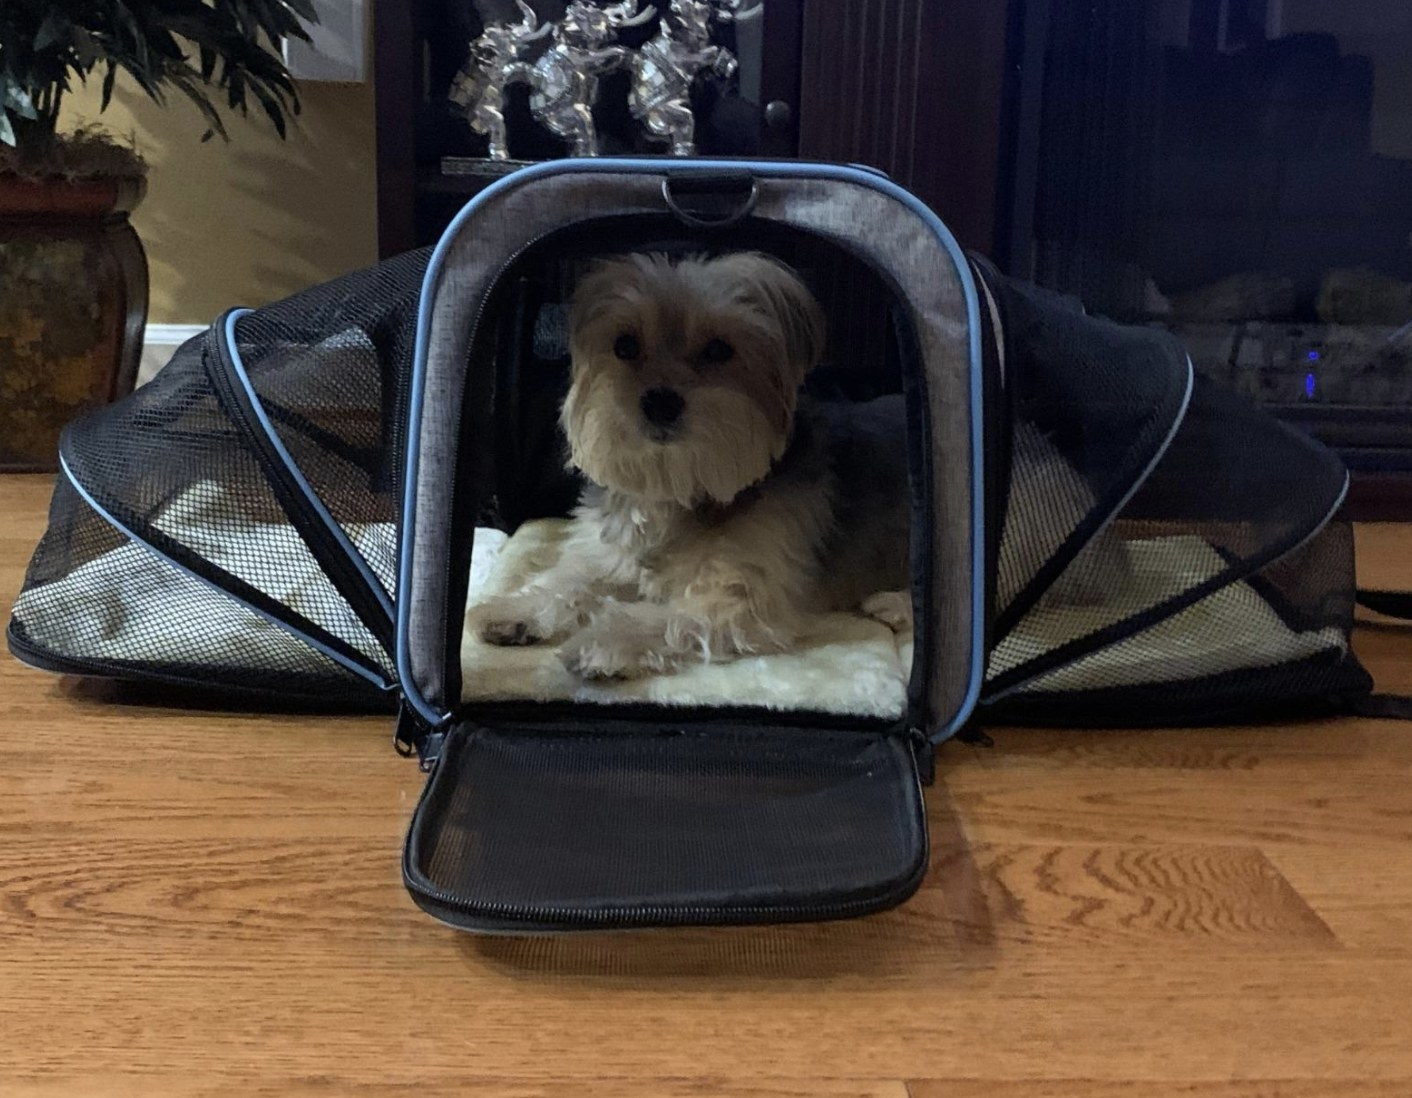 A small dog sits inside a pet carrier with two expandable sides for extra space